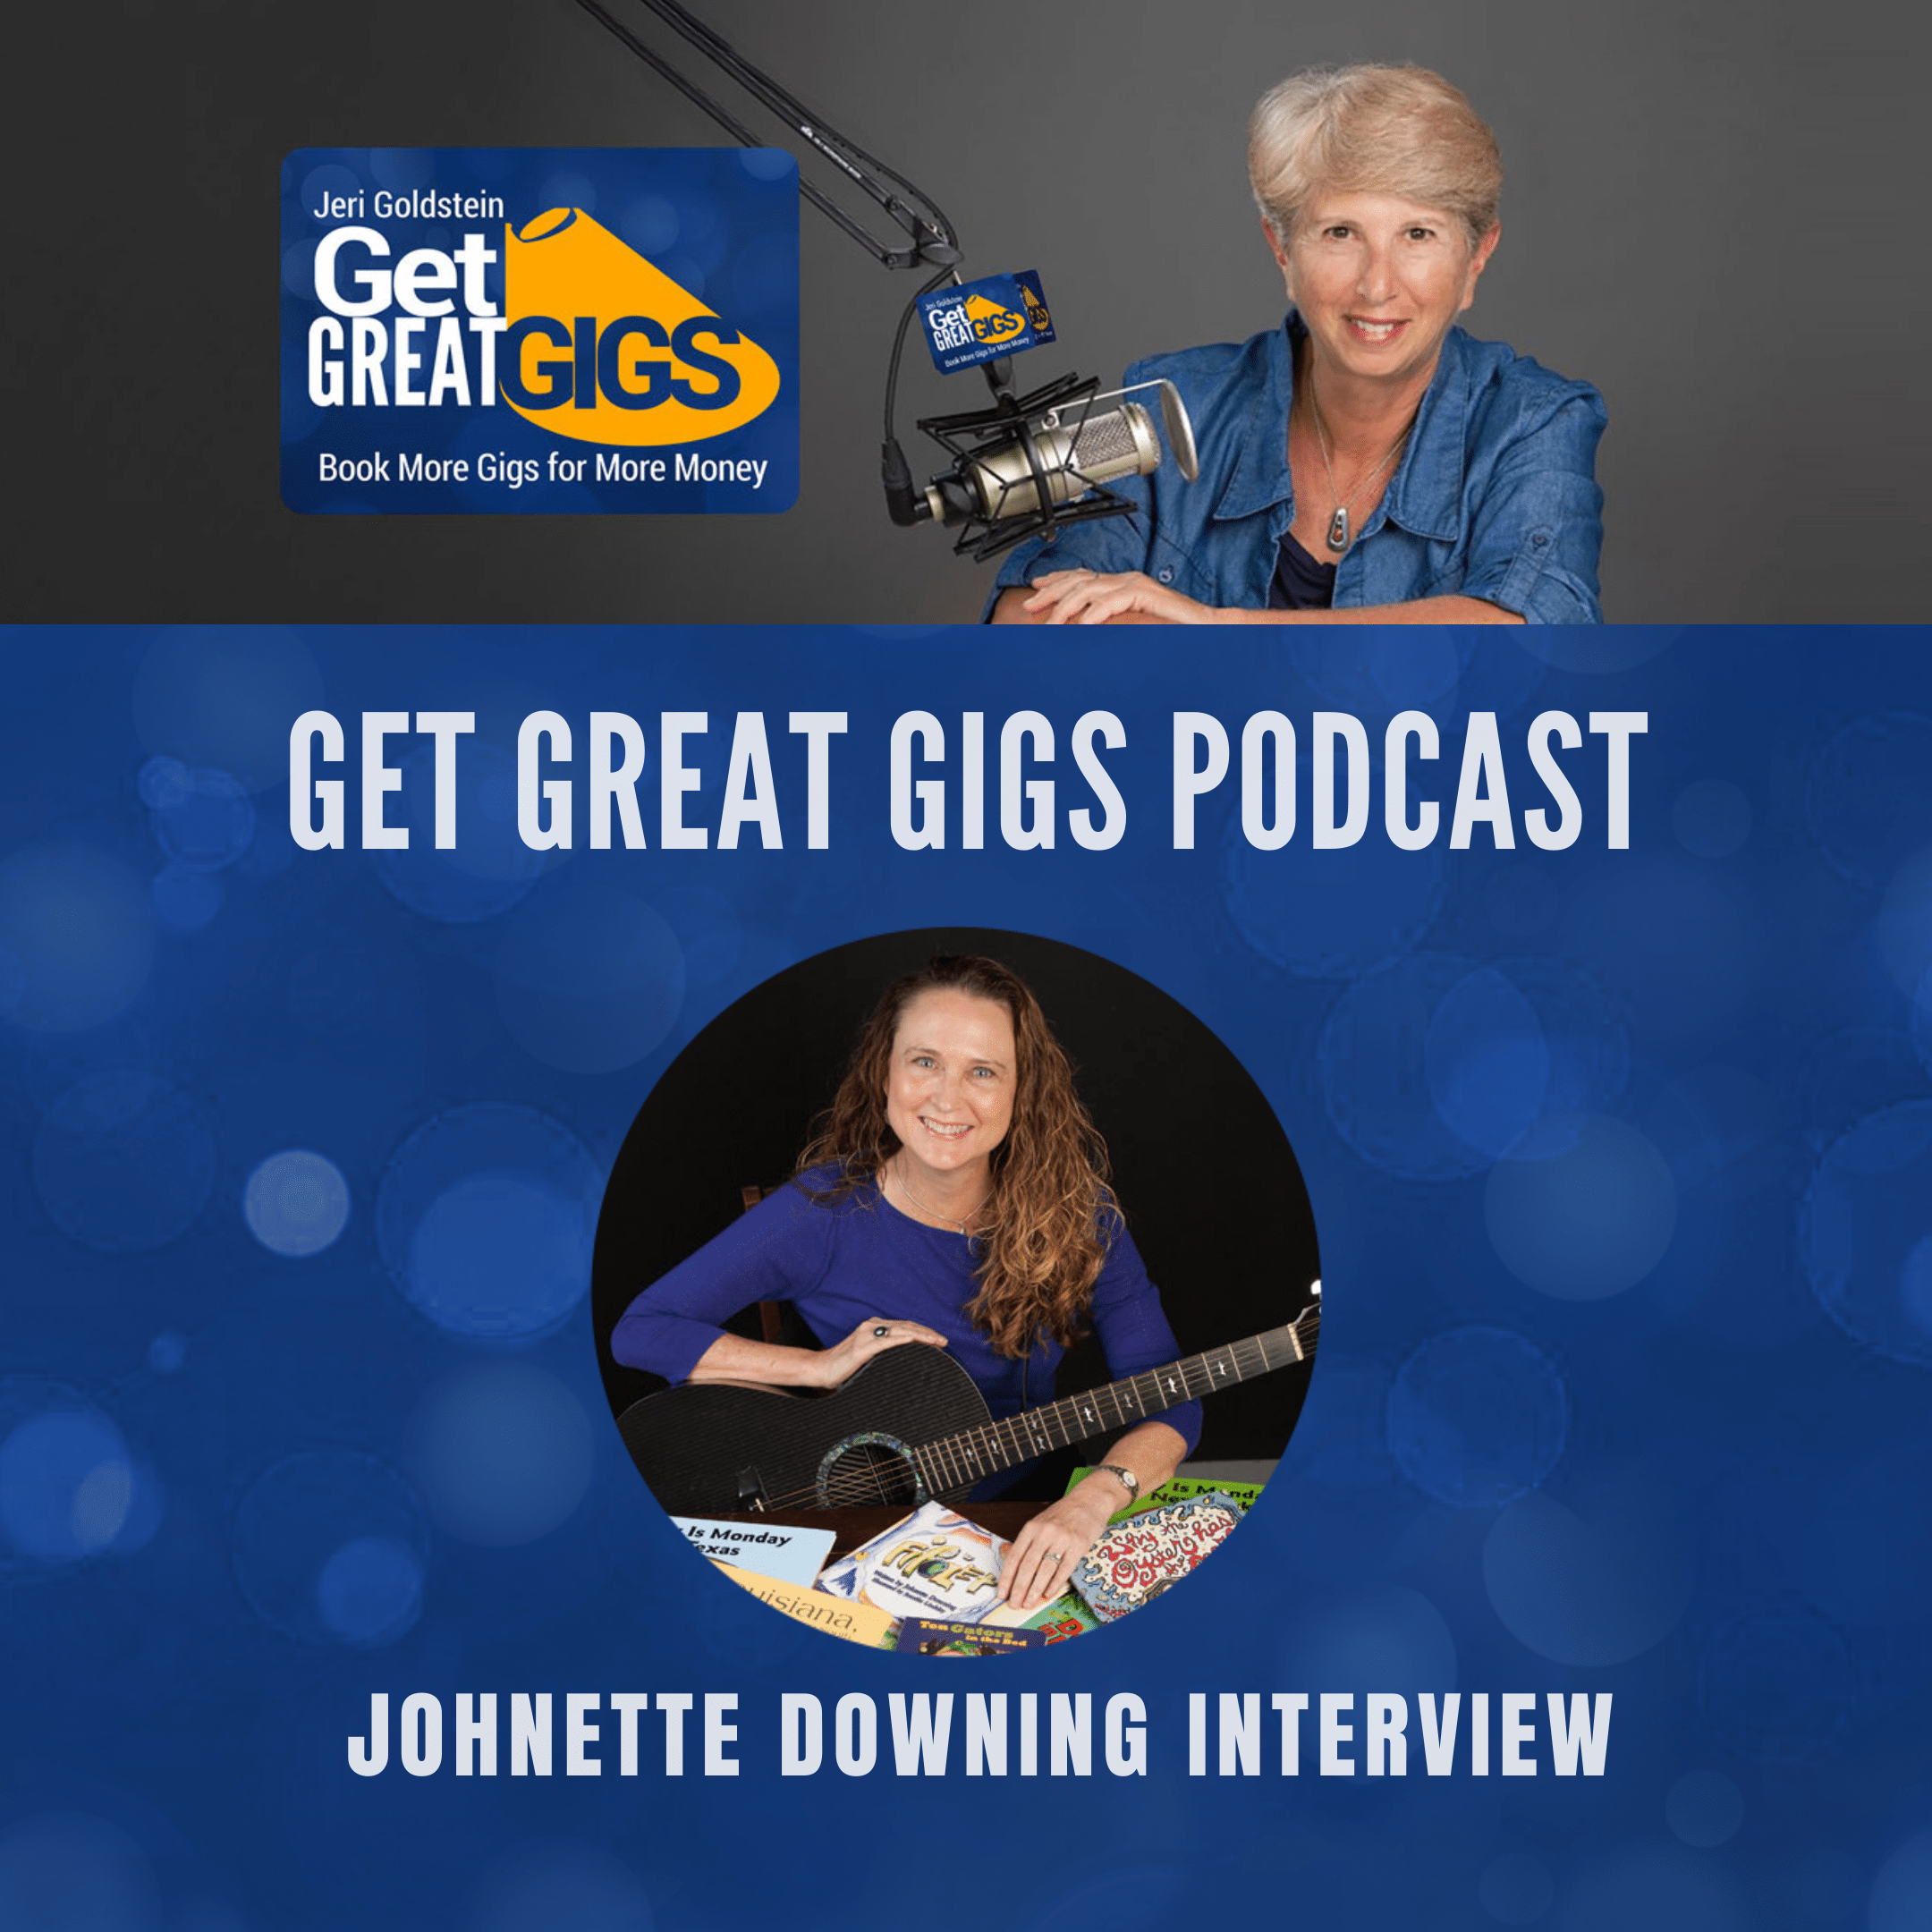 Johnette Downing Interview